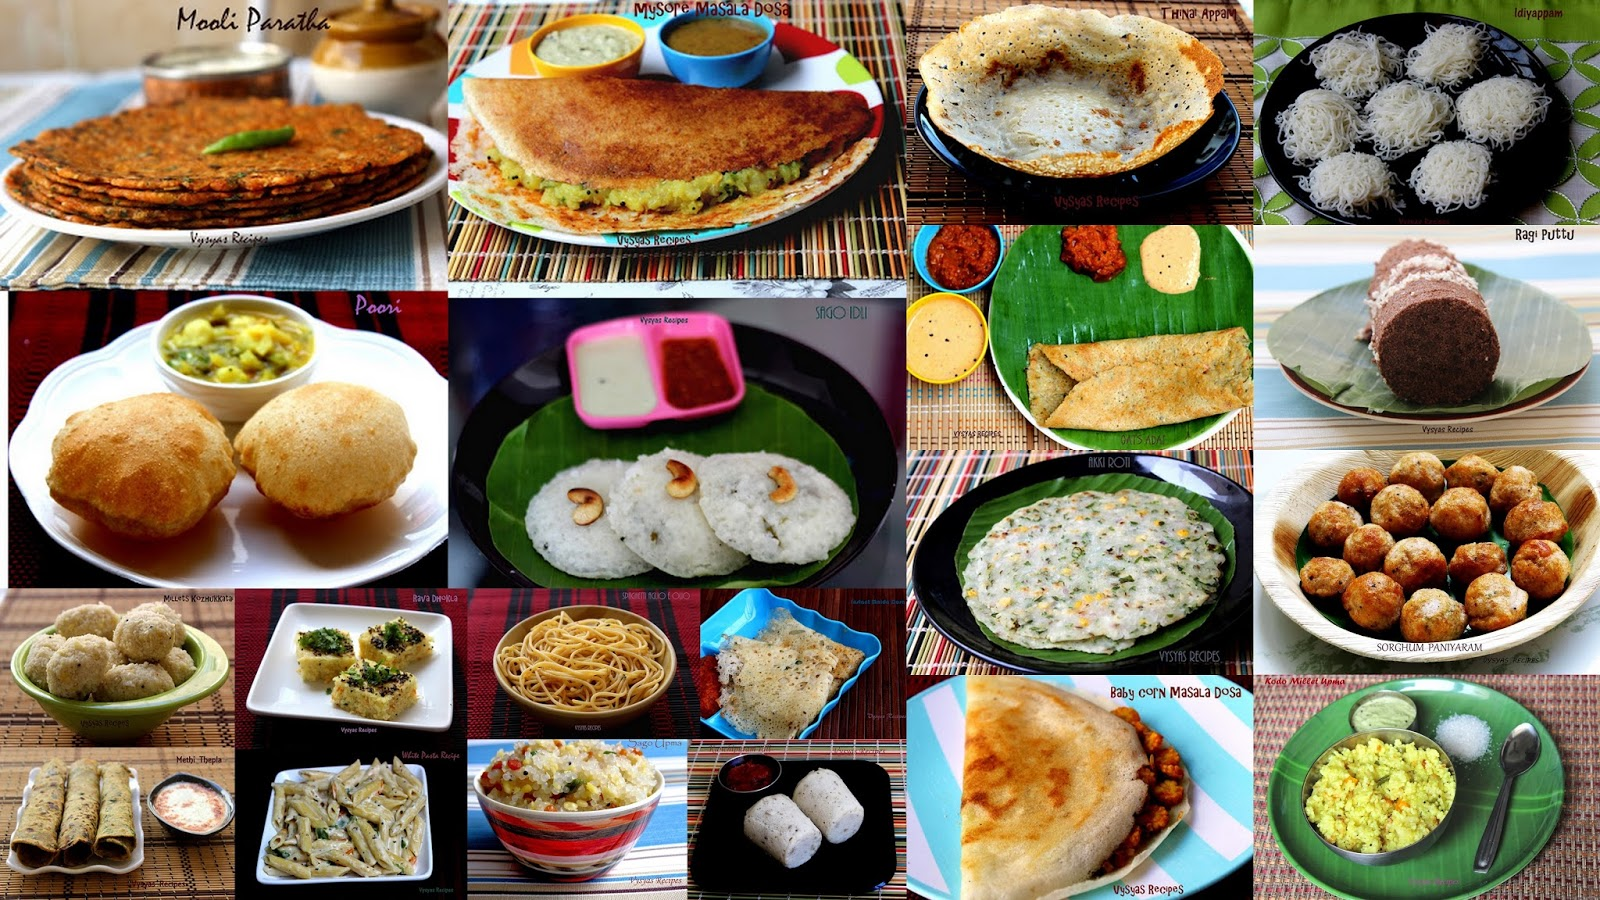 Break Fast Is Considered As The Important Meal Of Day Literally Means Breaking Fasting Period Prior NightWikipedia